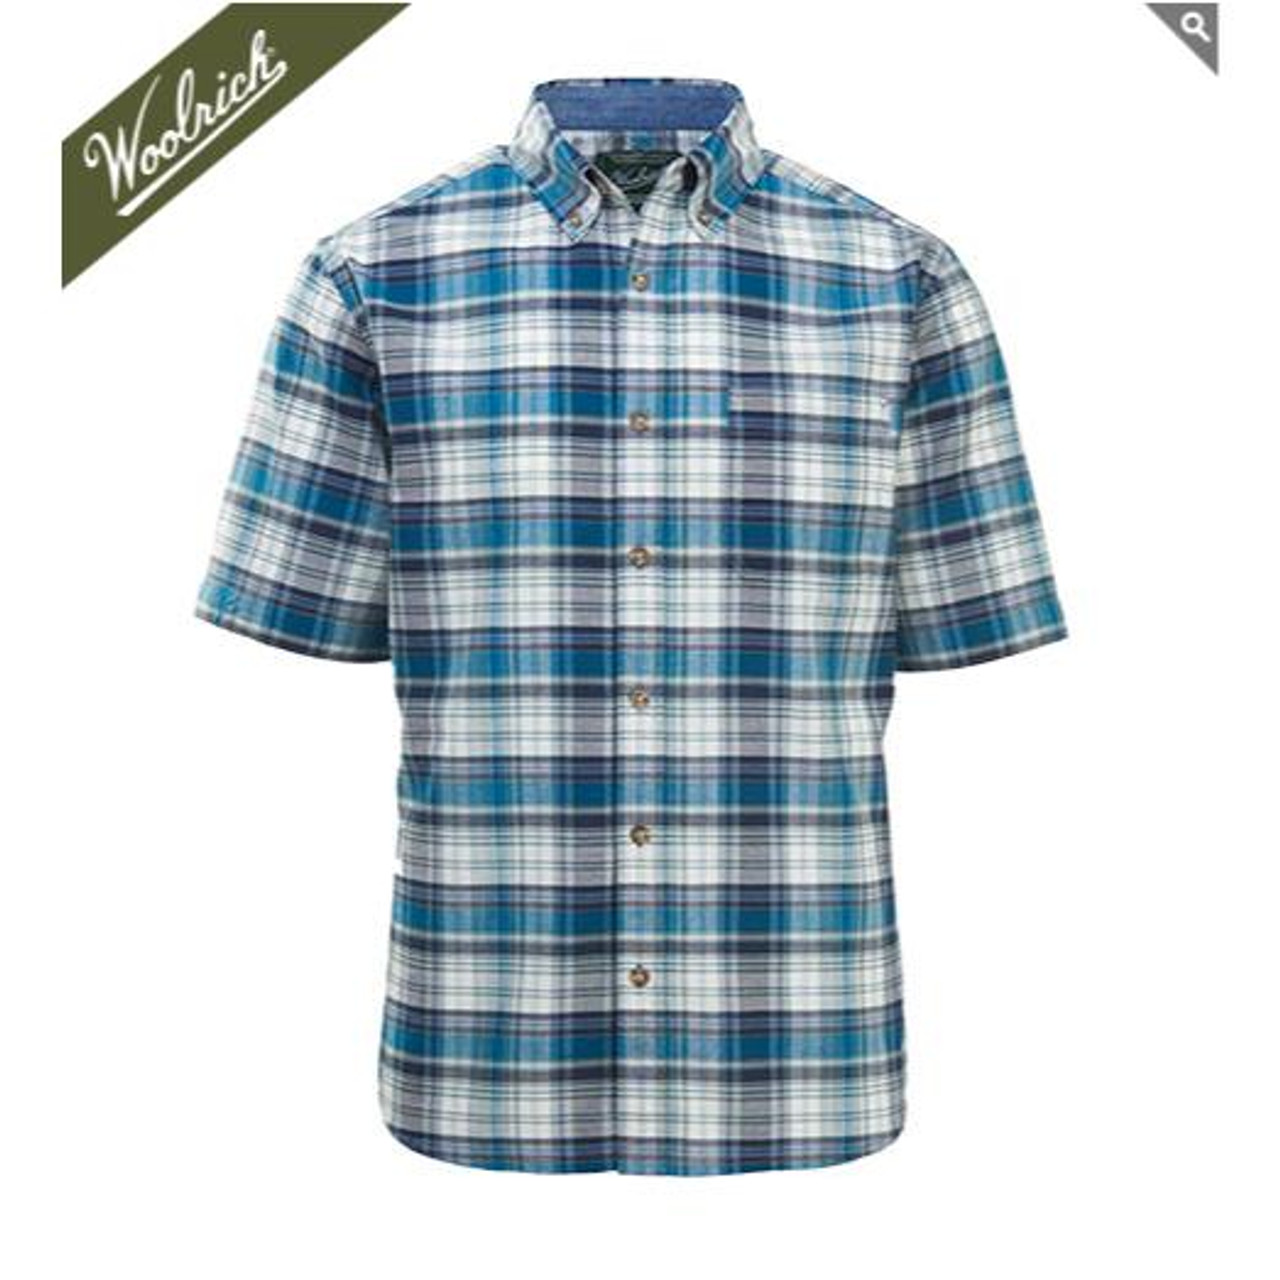 8e174409edc803 Woolrich Men's Timberline Short Sleeve Madras Plaid Shirt - 100% Organic  Cotton #6163 -. COLOR: Required